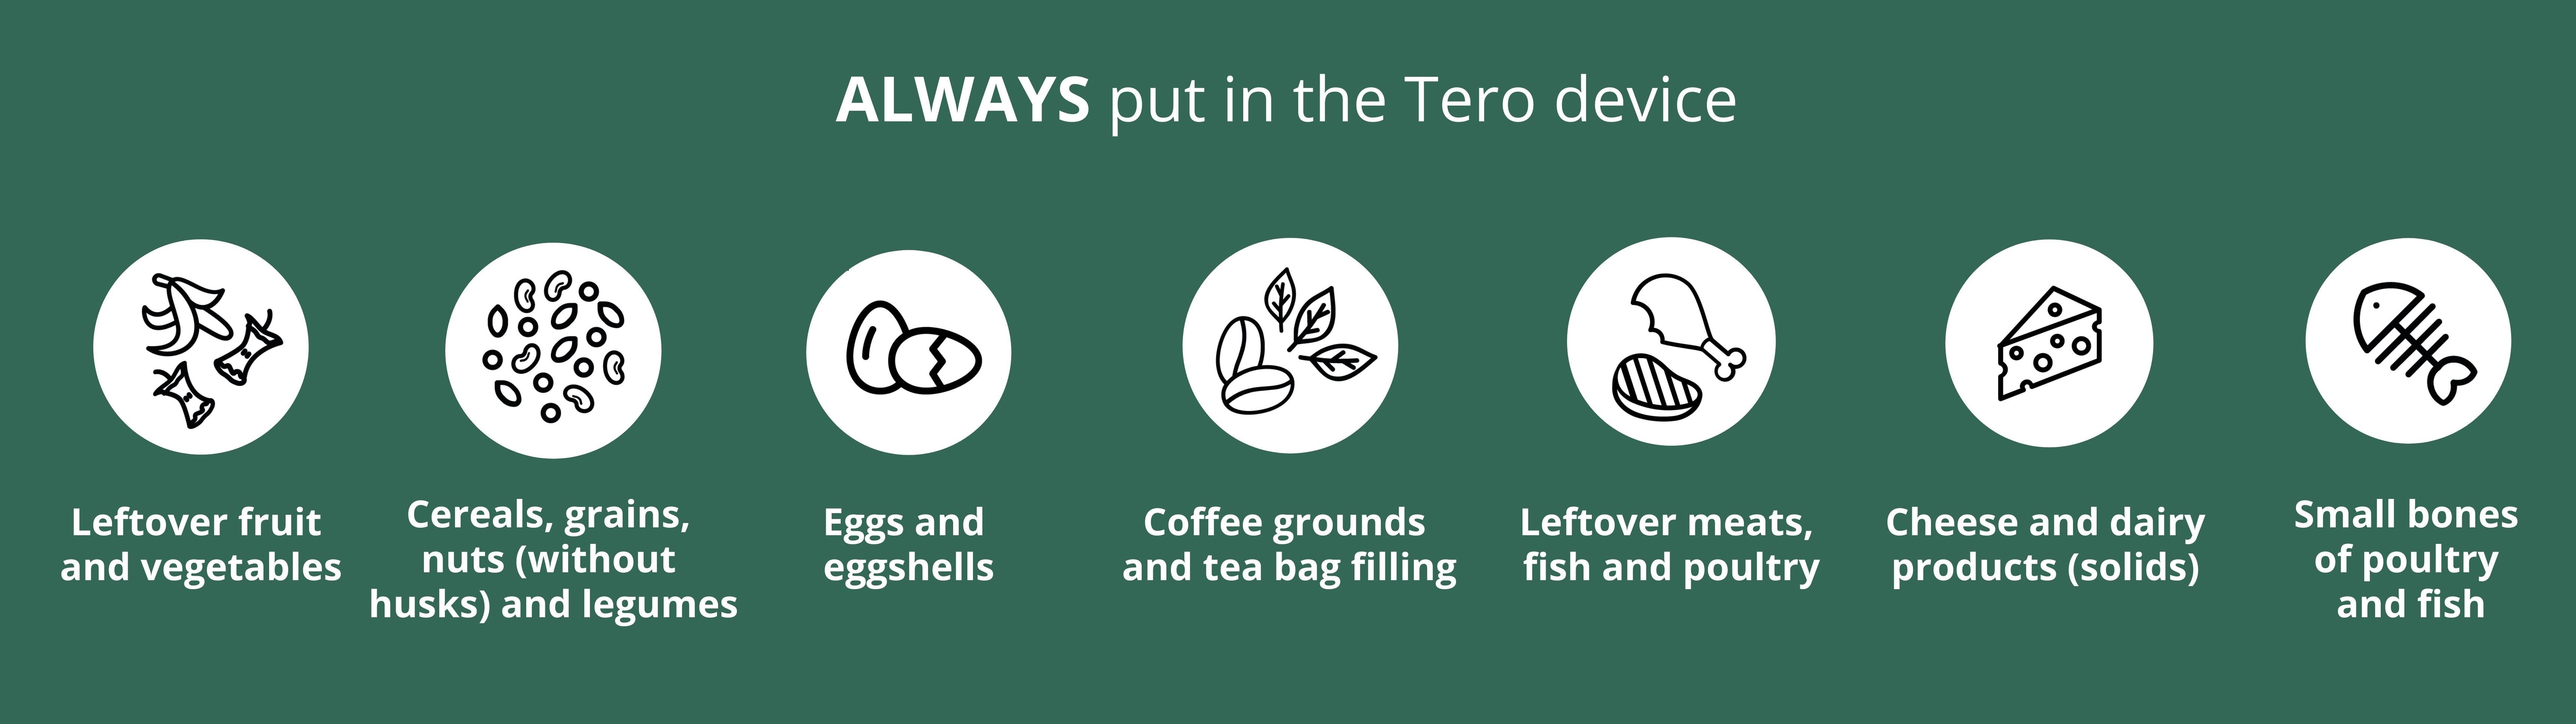 Foods that you can always put in the Tero device